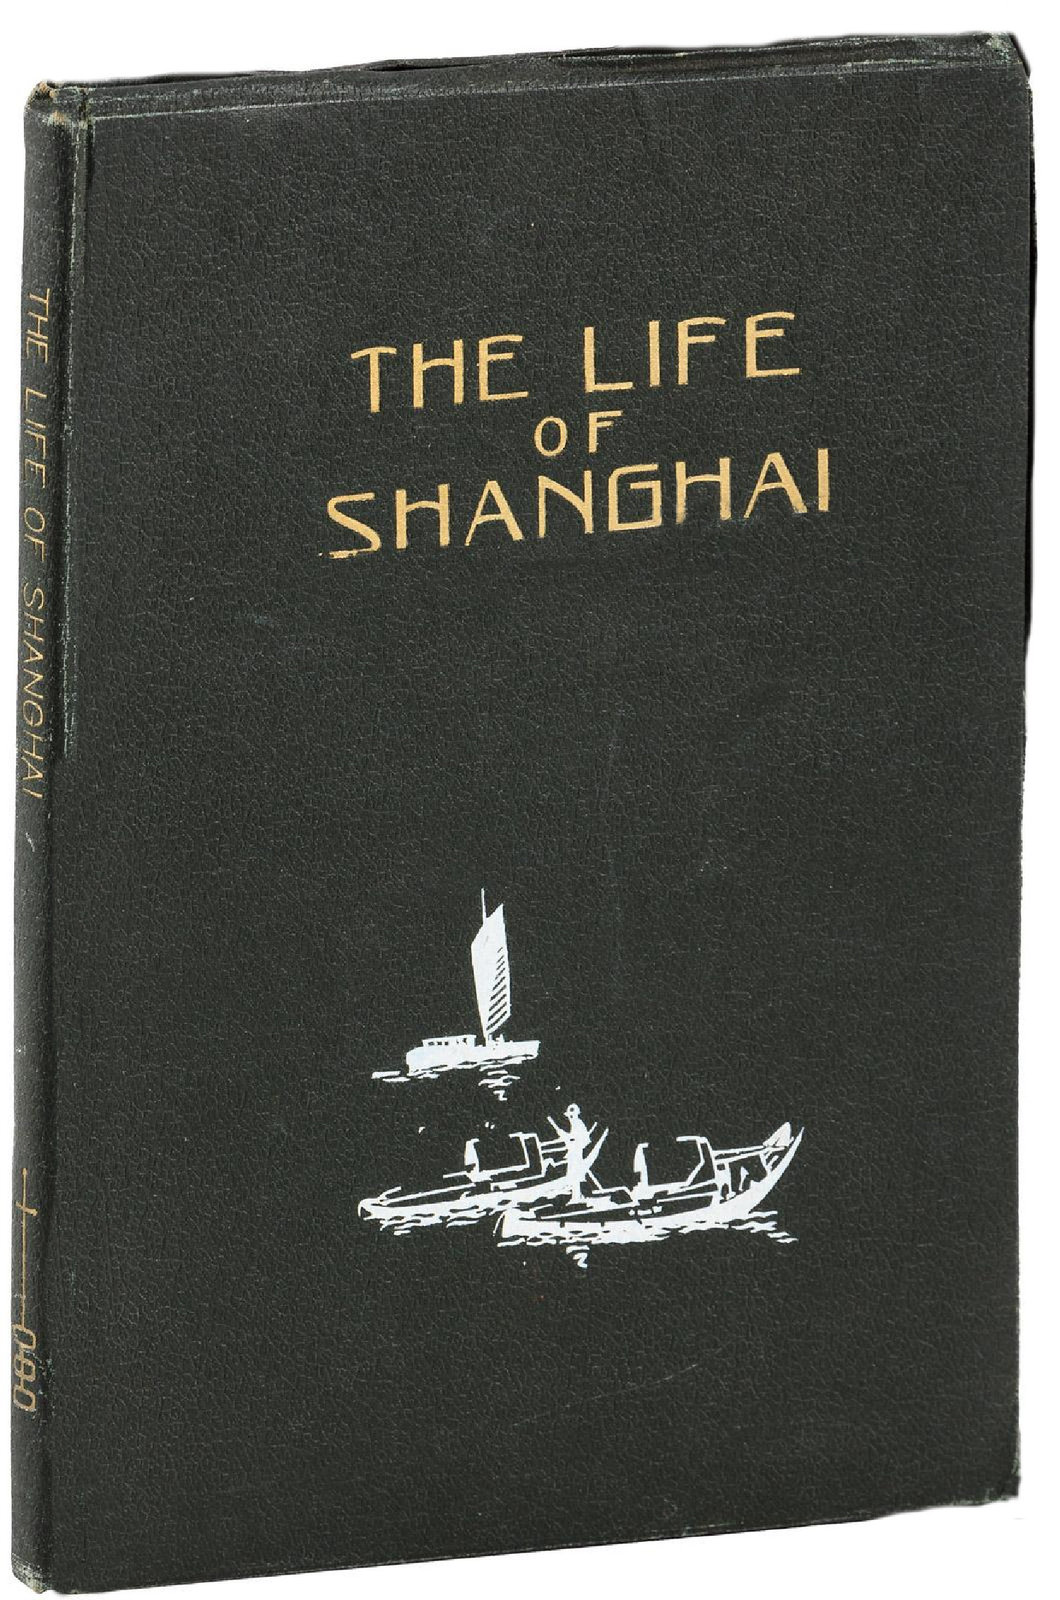 the life of shanghai,  very rare  pictorial look at Shanghai 1934    First Editi